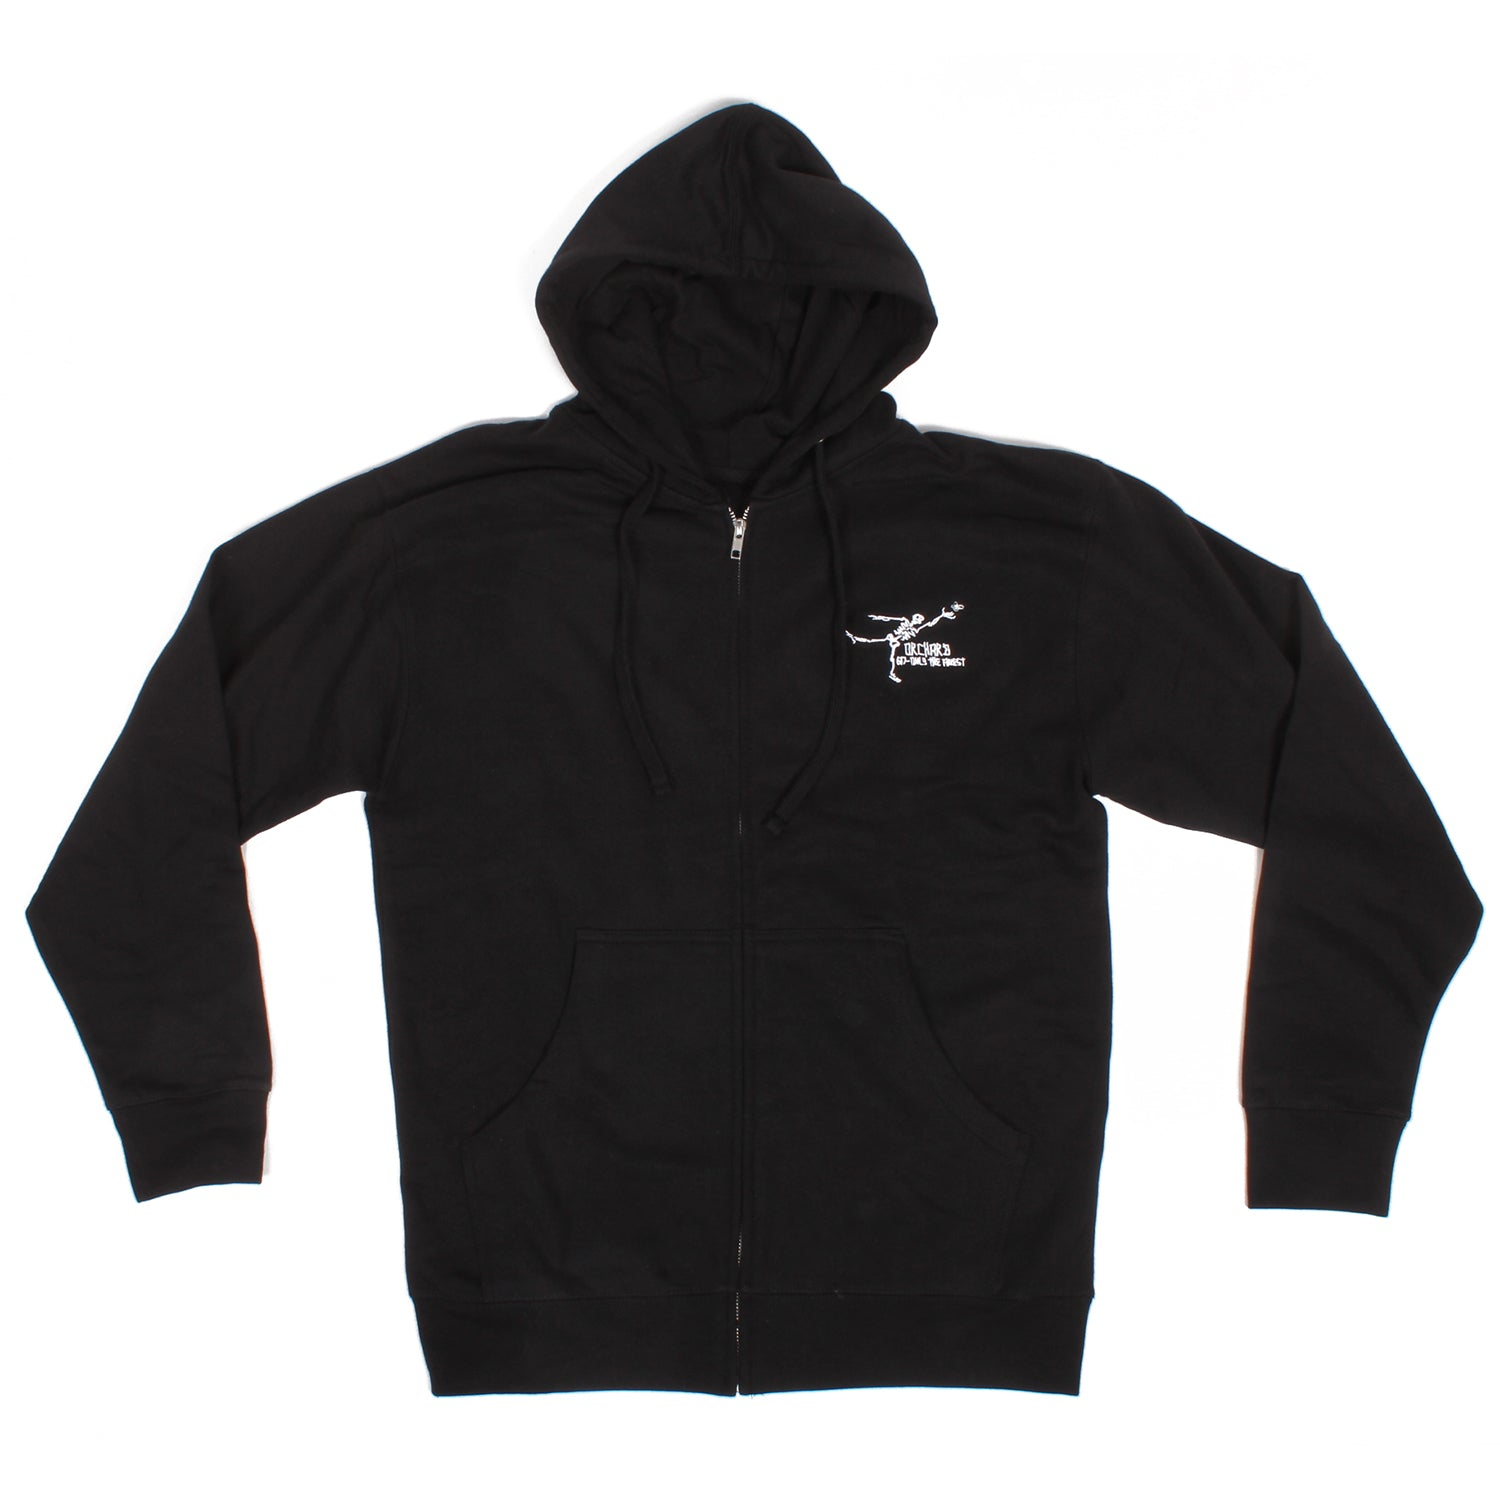 Orchard Gonz Only The Finest Zip Up Sweatshirt Black